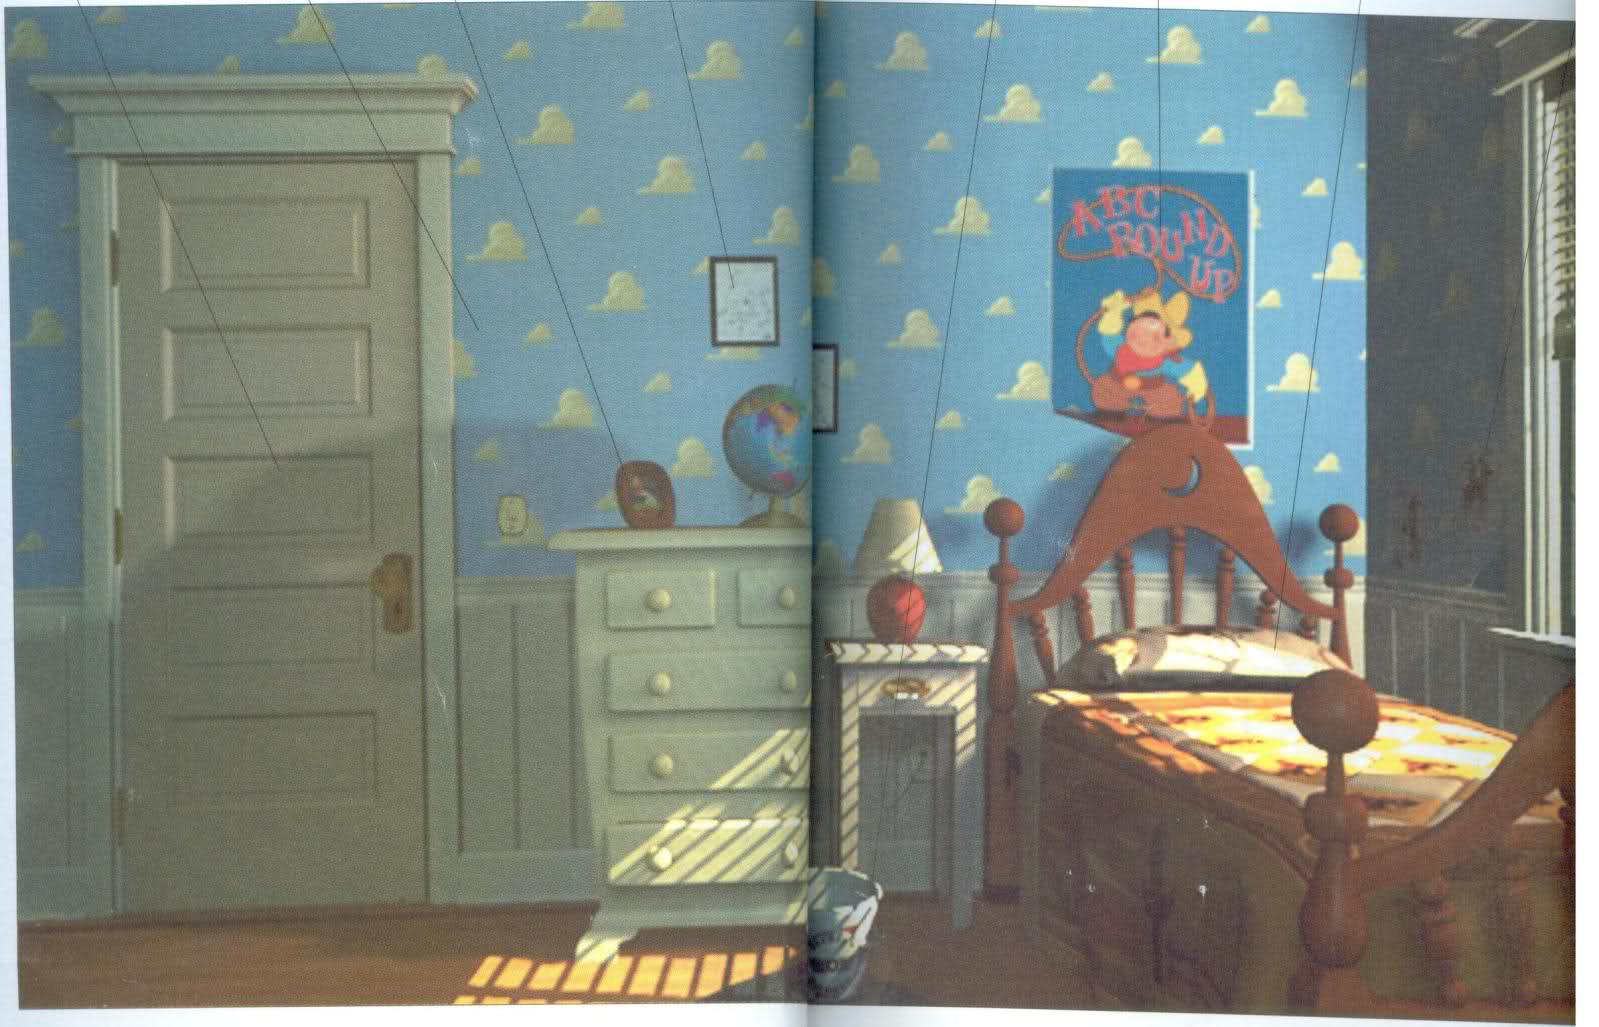 Free Download Toy Story Andys Room Fileandys Bedroomjpg 1599x1027